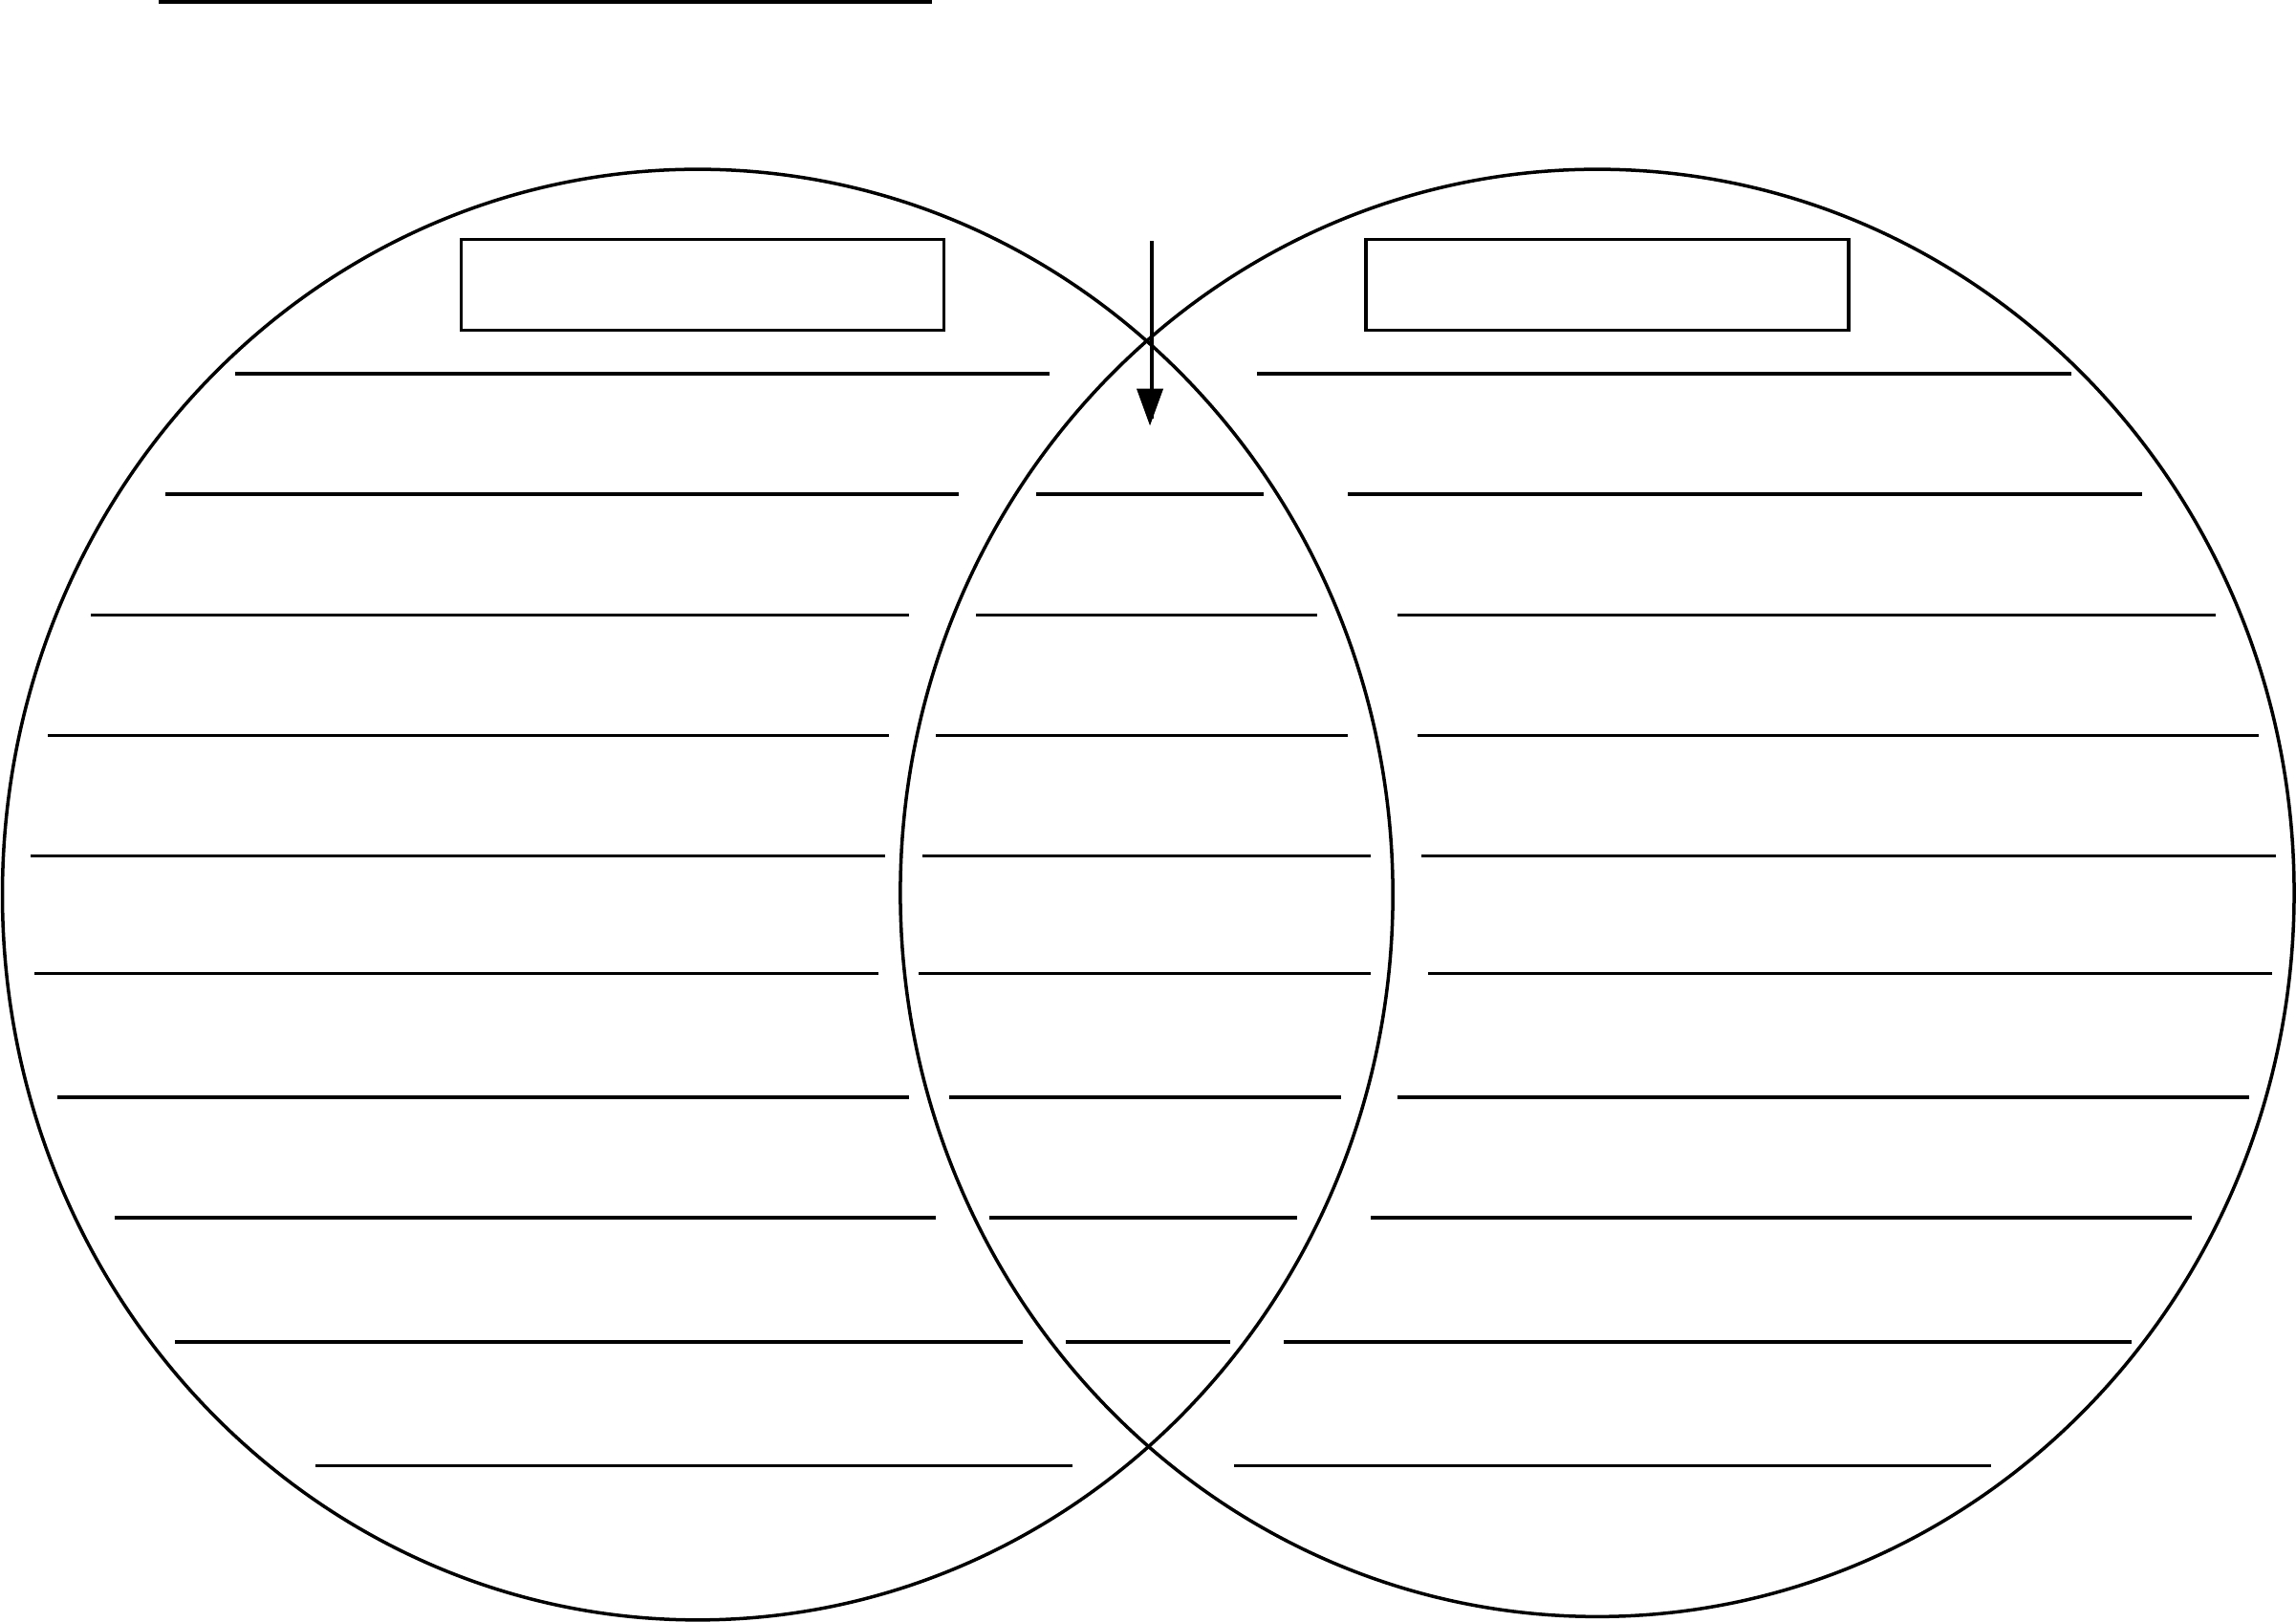 Venn Diagram Template (Character) Free Download - Free Printable Venn Diagram